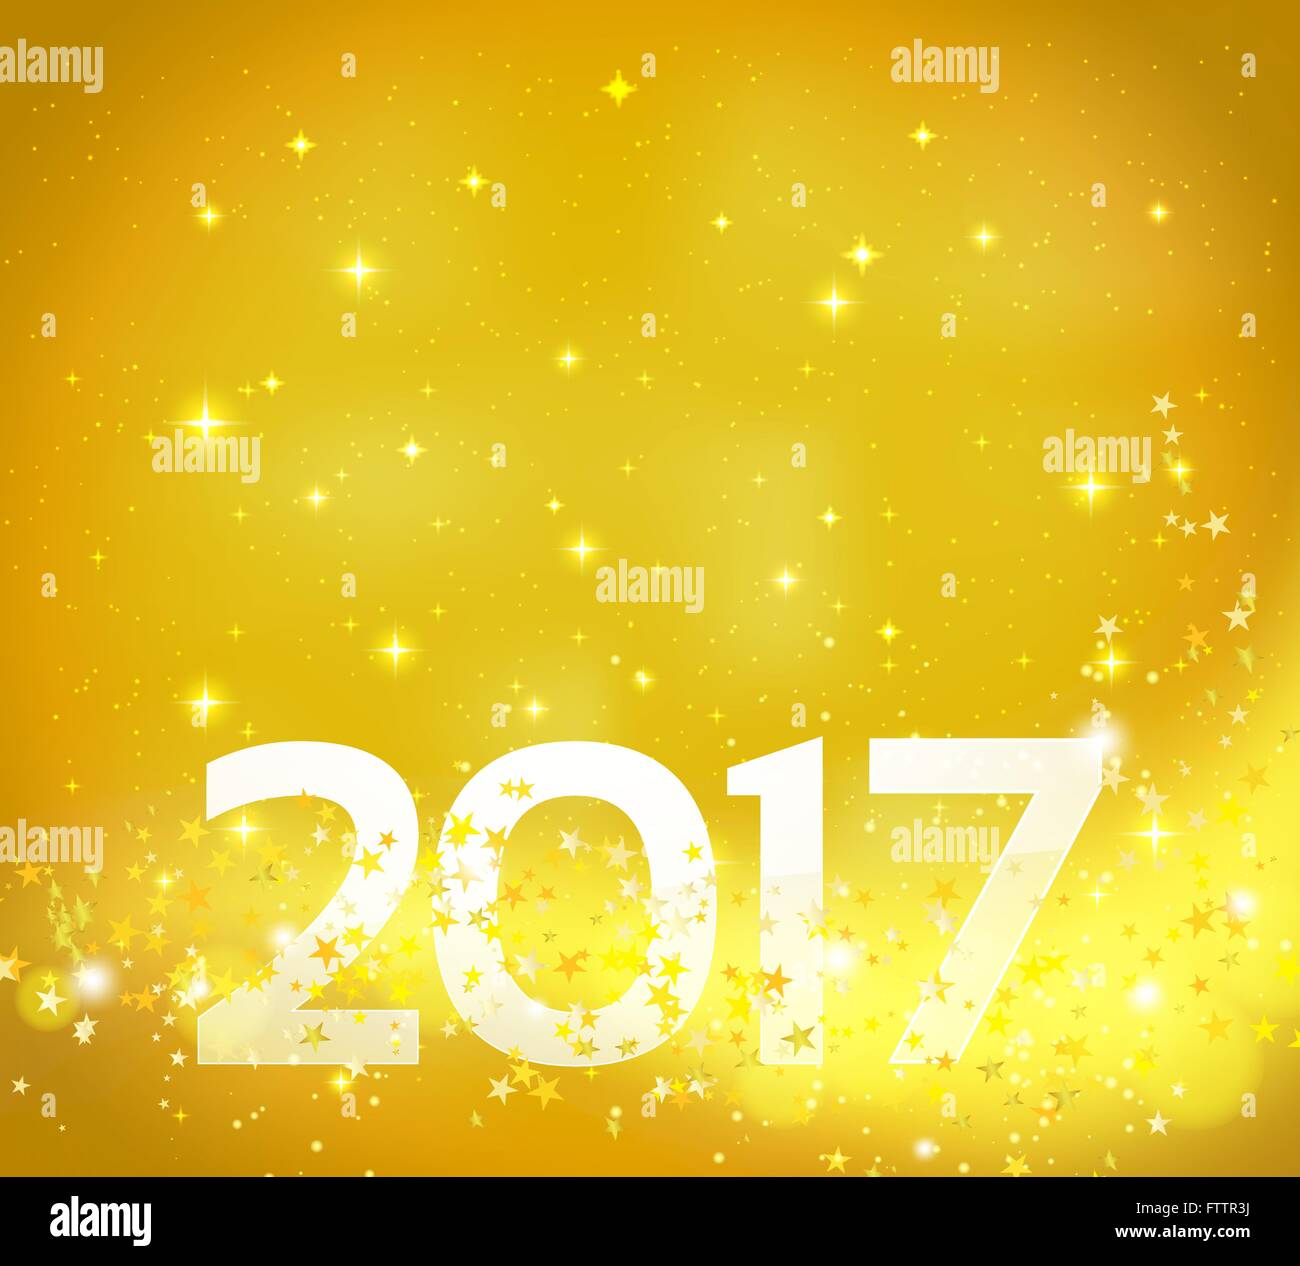 Golden abstract background with 2017 number. Happy new ...